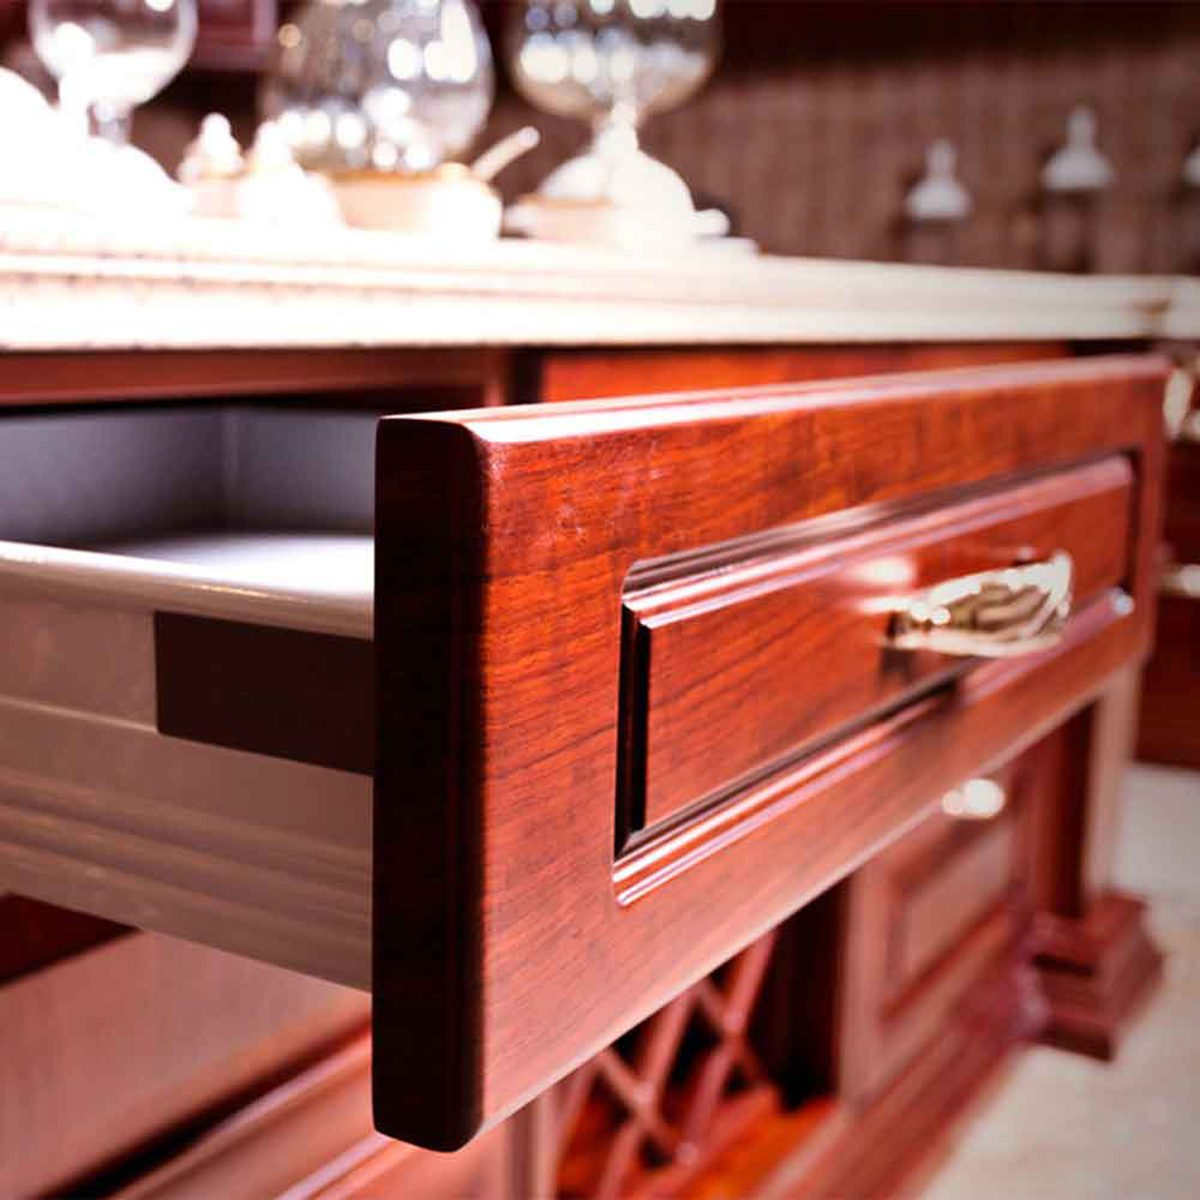 Opened drawer in a kitchen